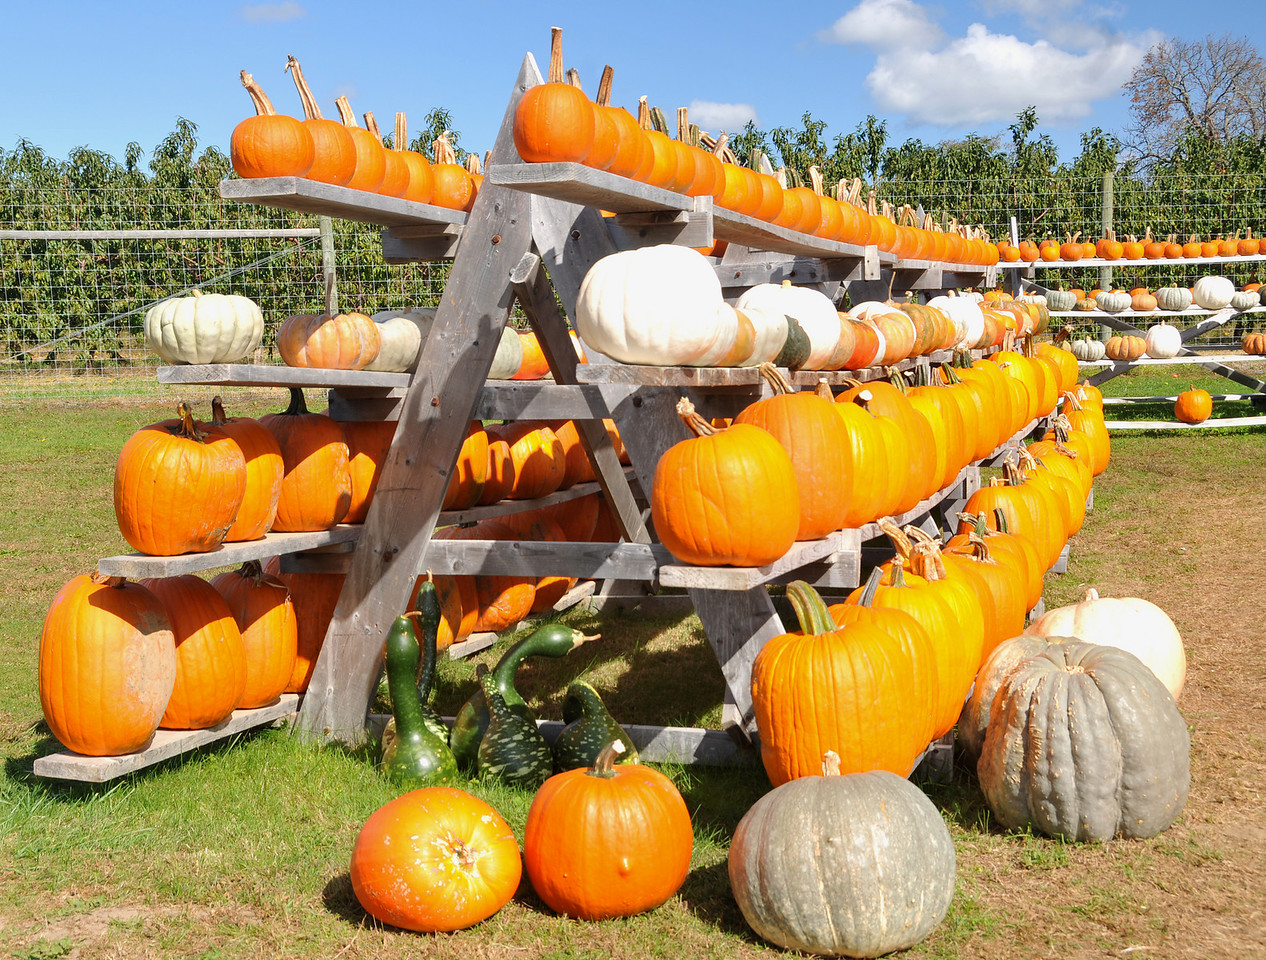 Roadside pumpkin stand, East End, Long Island